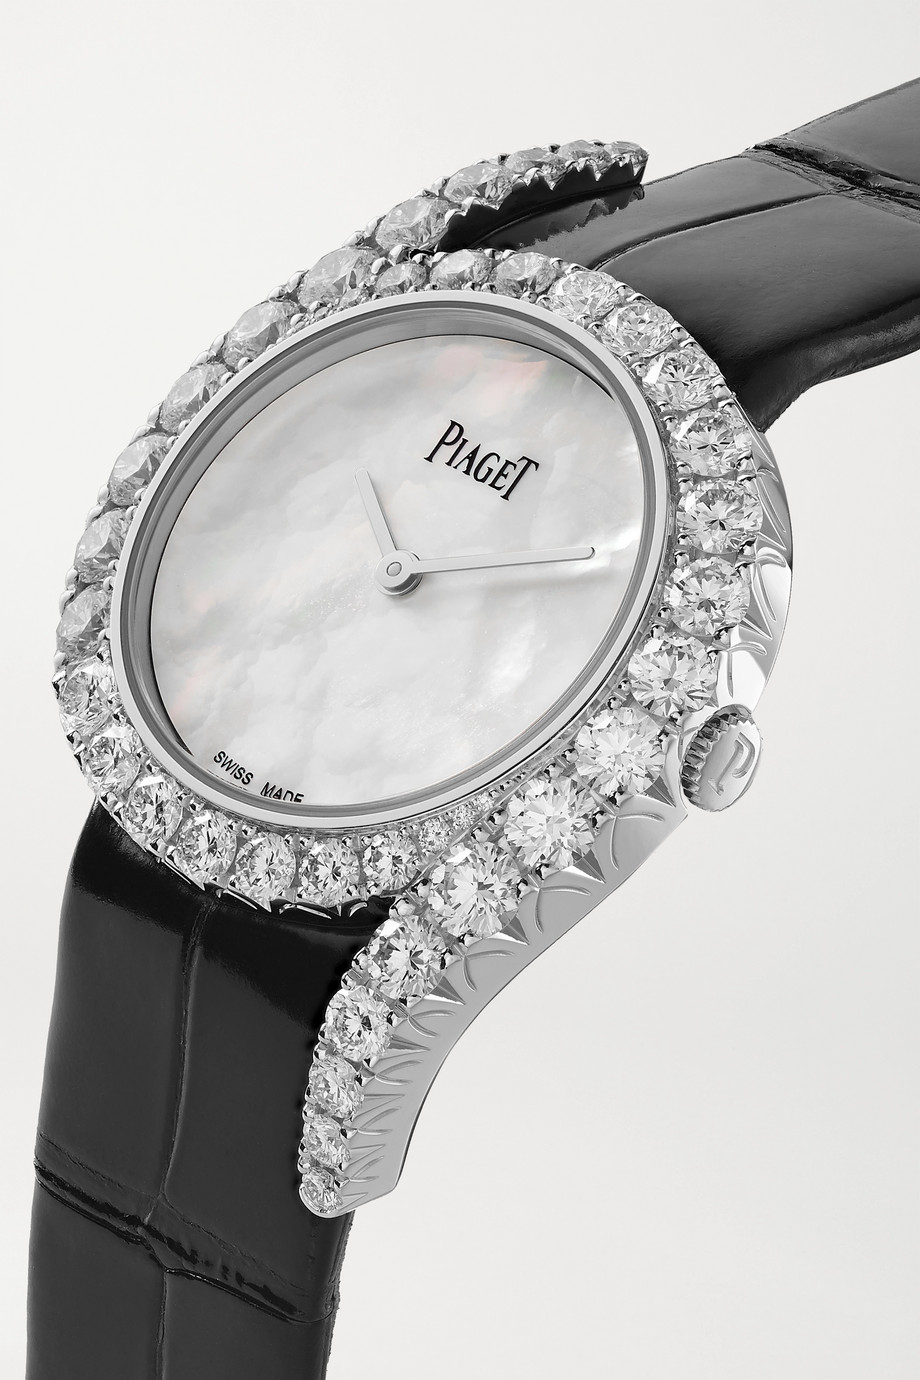 Piaget Montre en or blanc 18 carats, nacre et diamants à bracelet en alligator Limelight Gala 32 mm